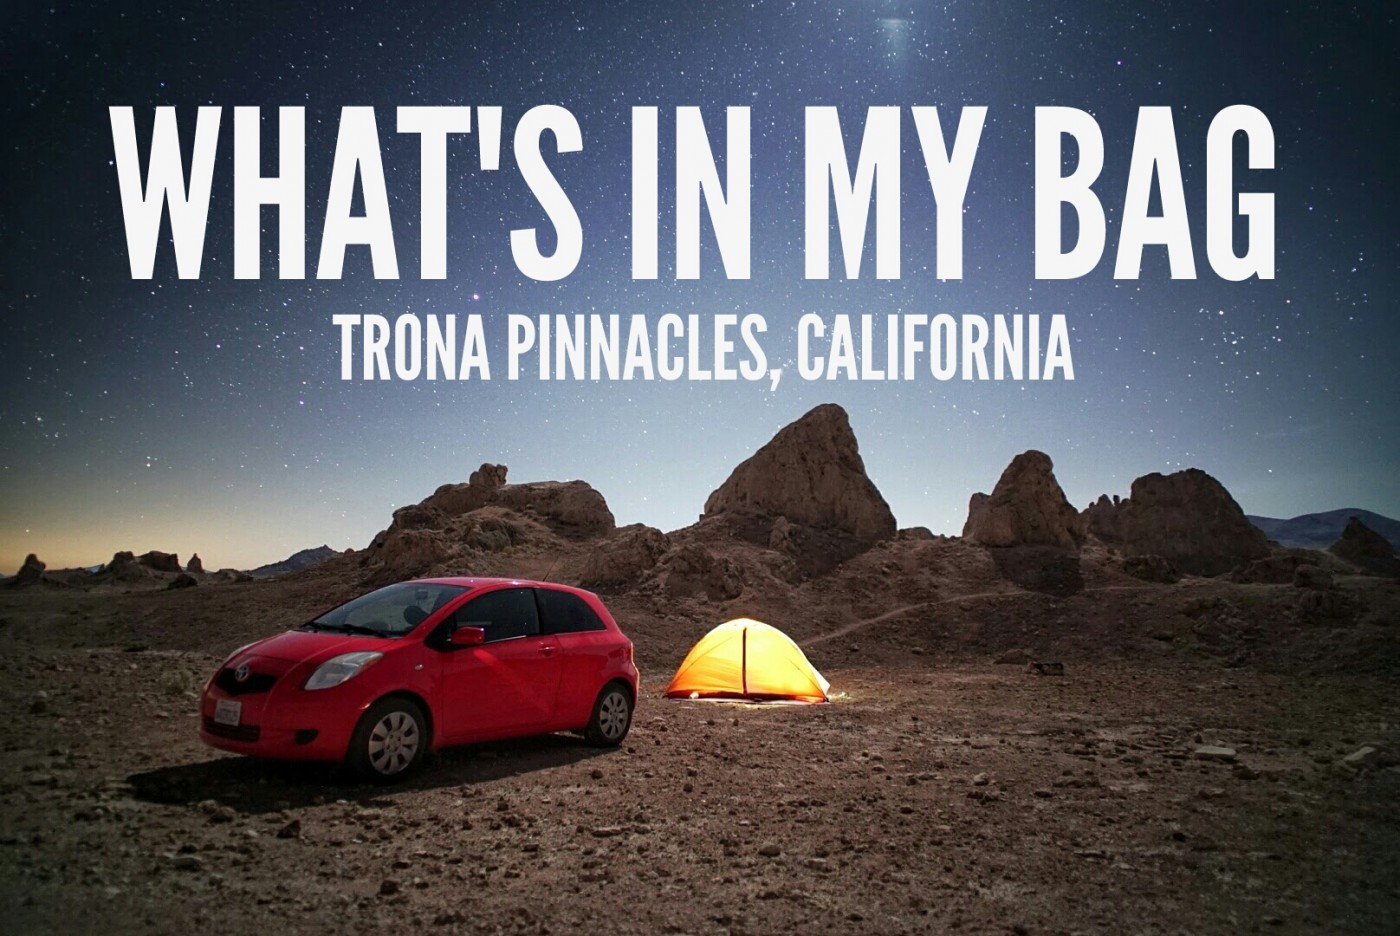 What's In My Bag - Trona Pinnacles, California